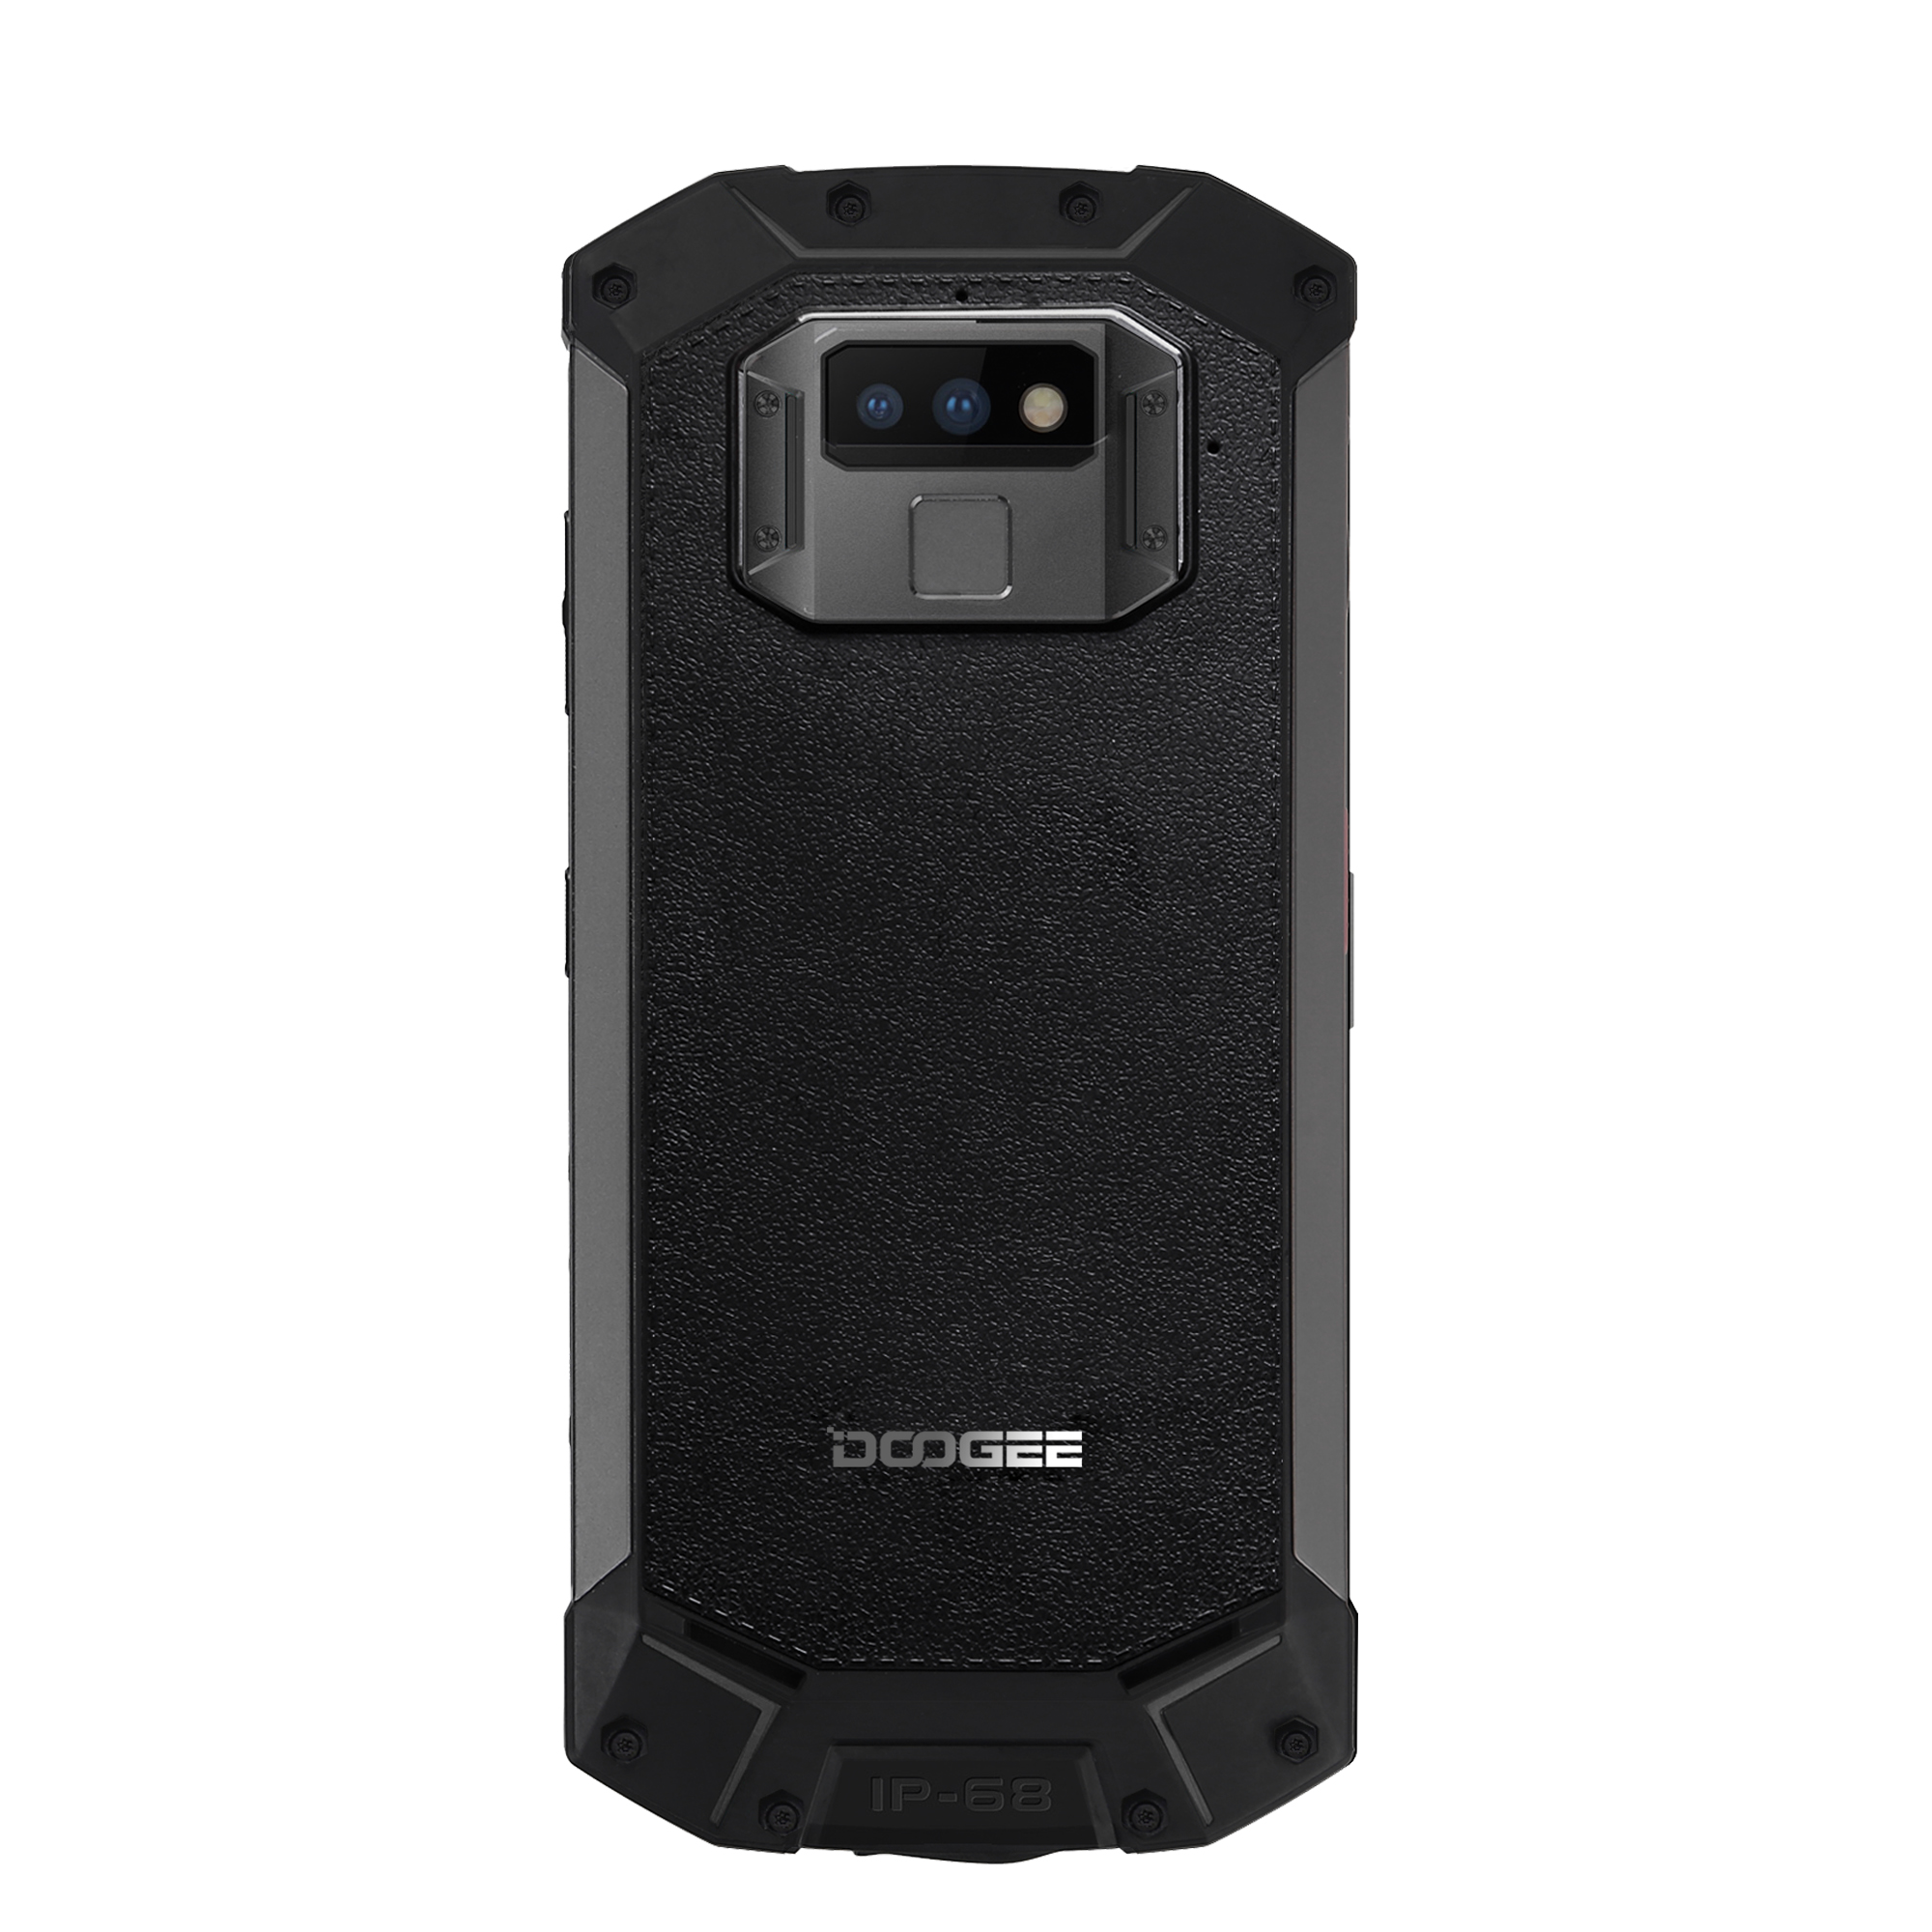 DOOGEE S70 Lite Waterproof Mobile Phone Wireless Charge NFC 5.99-Inch Core Android 8.1 4GB RAM Smartphone (Black)